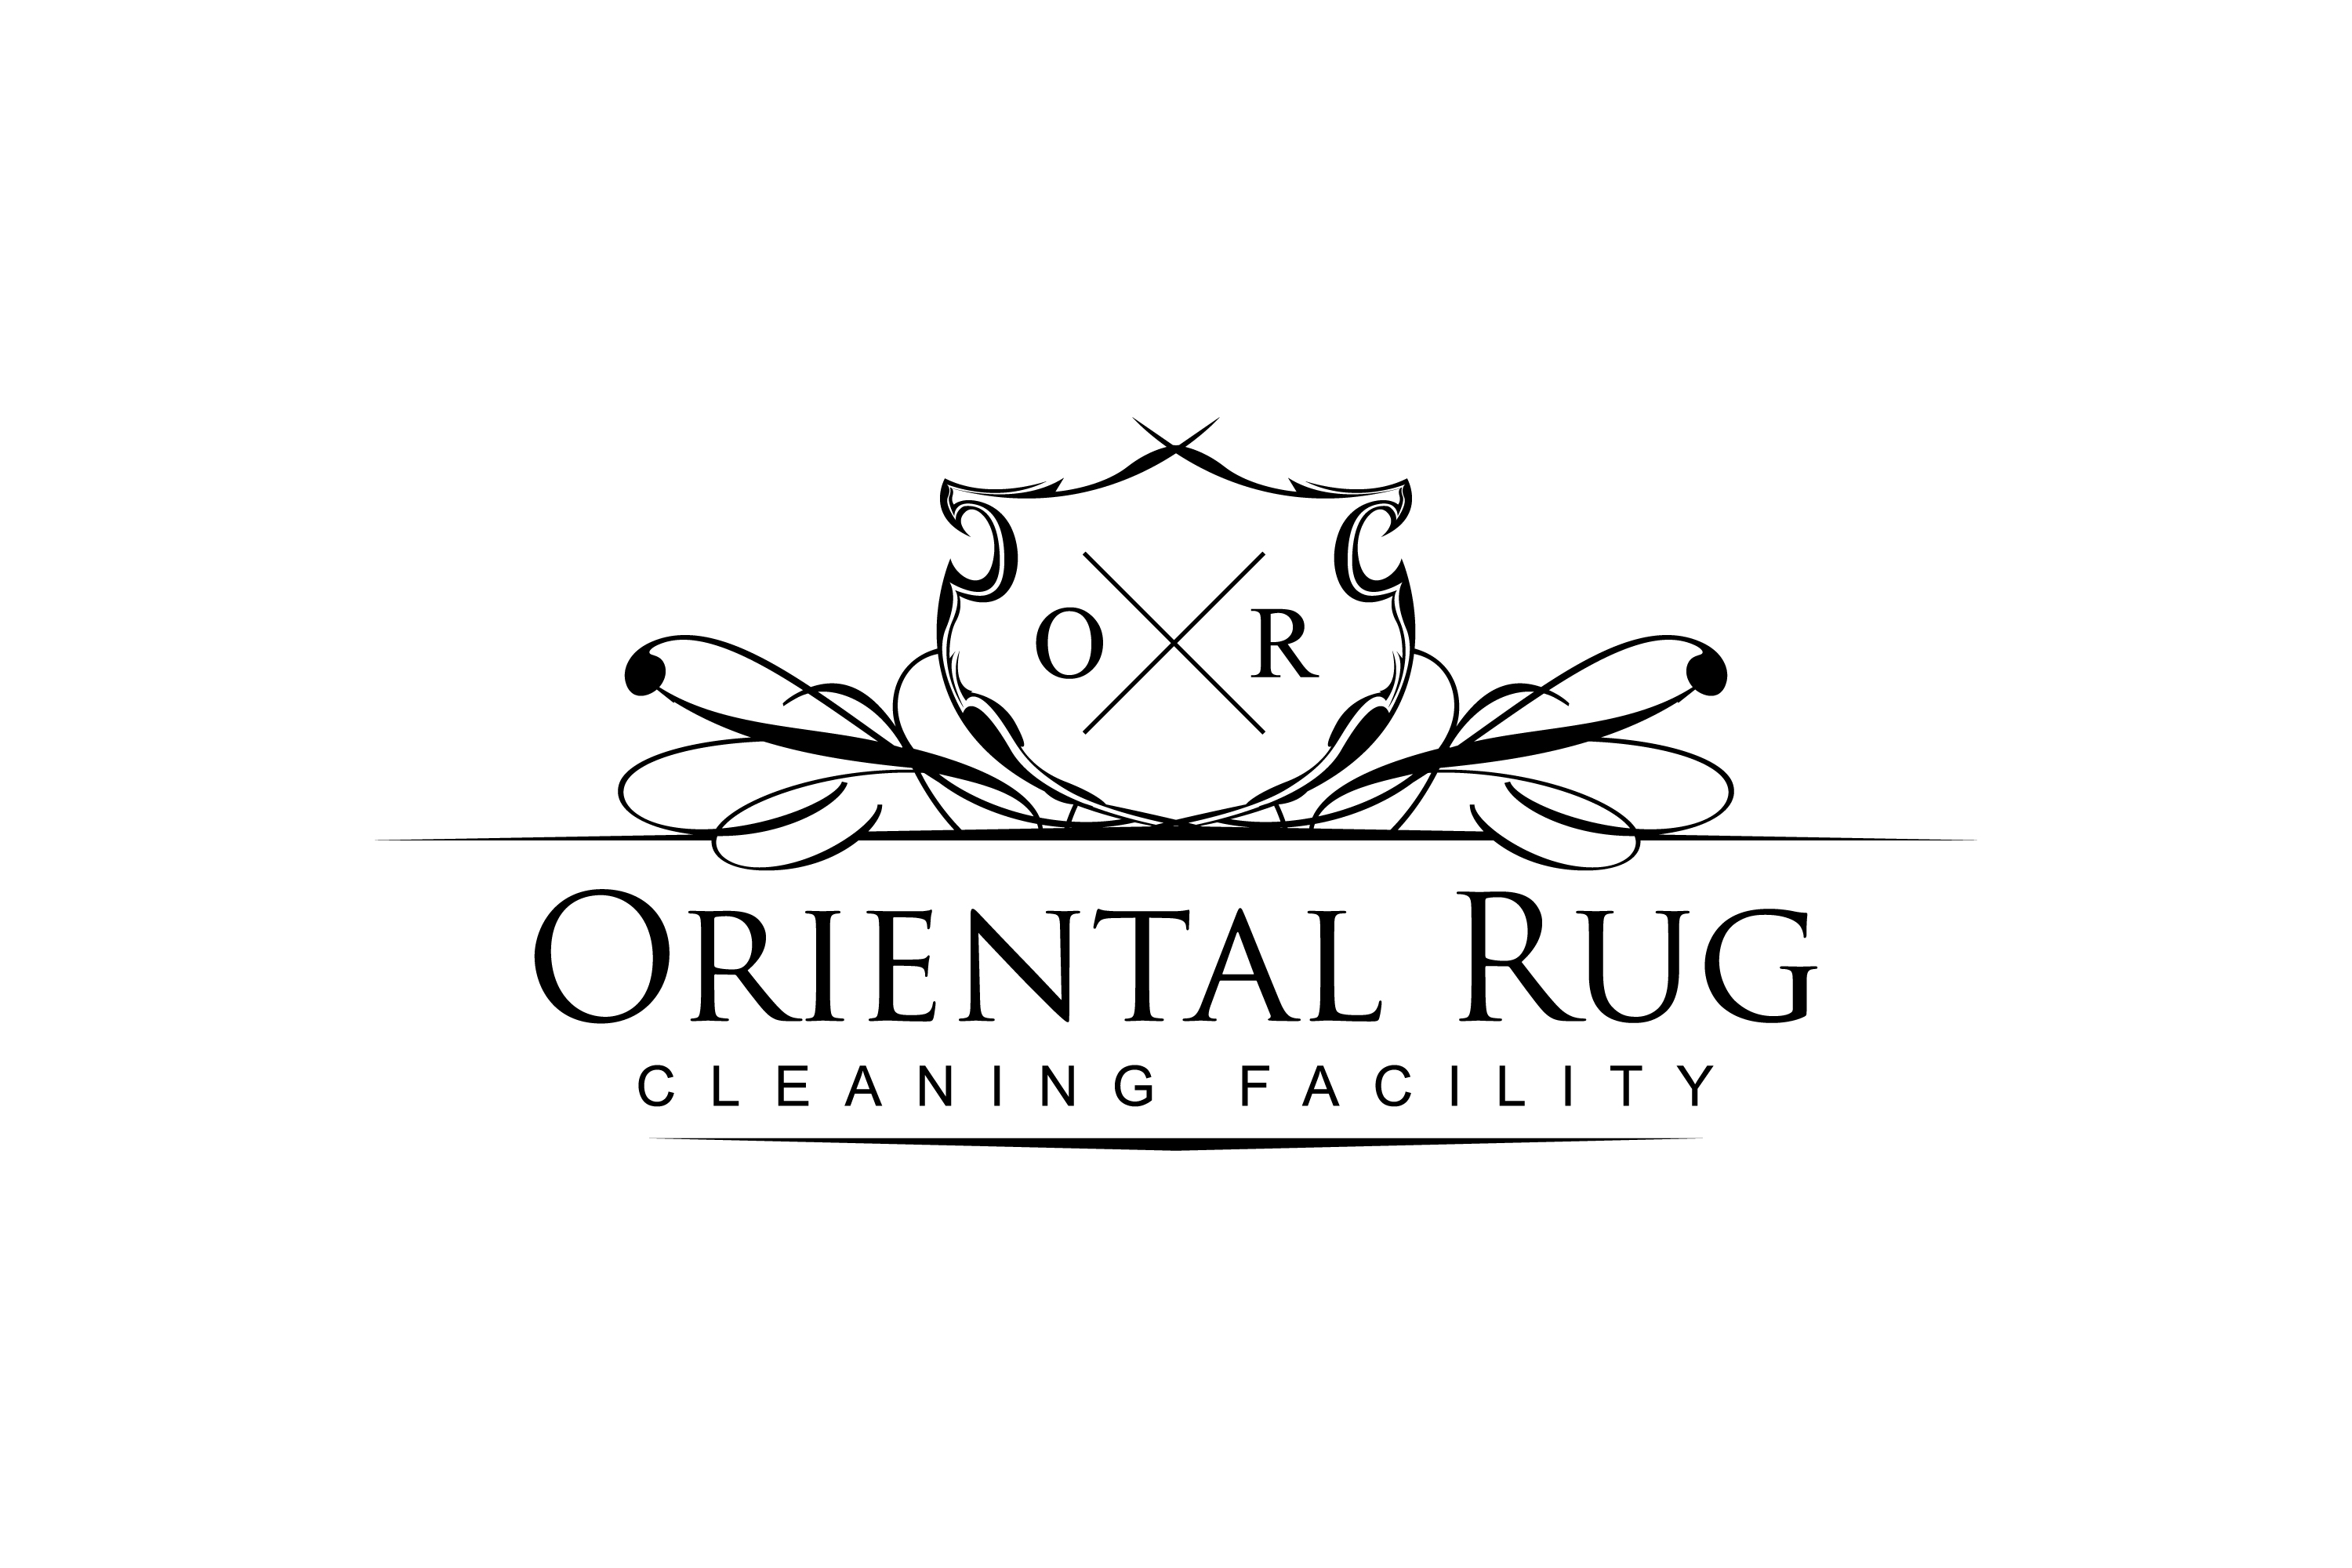 Area Rug Cleaning Tampa Oriental Rug Cleaning Facility